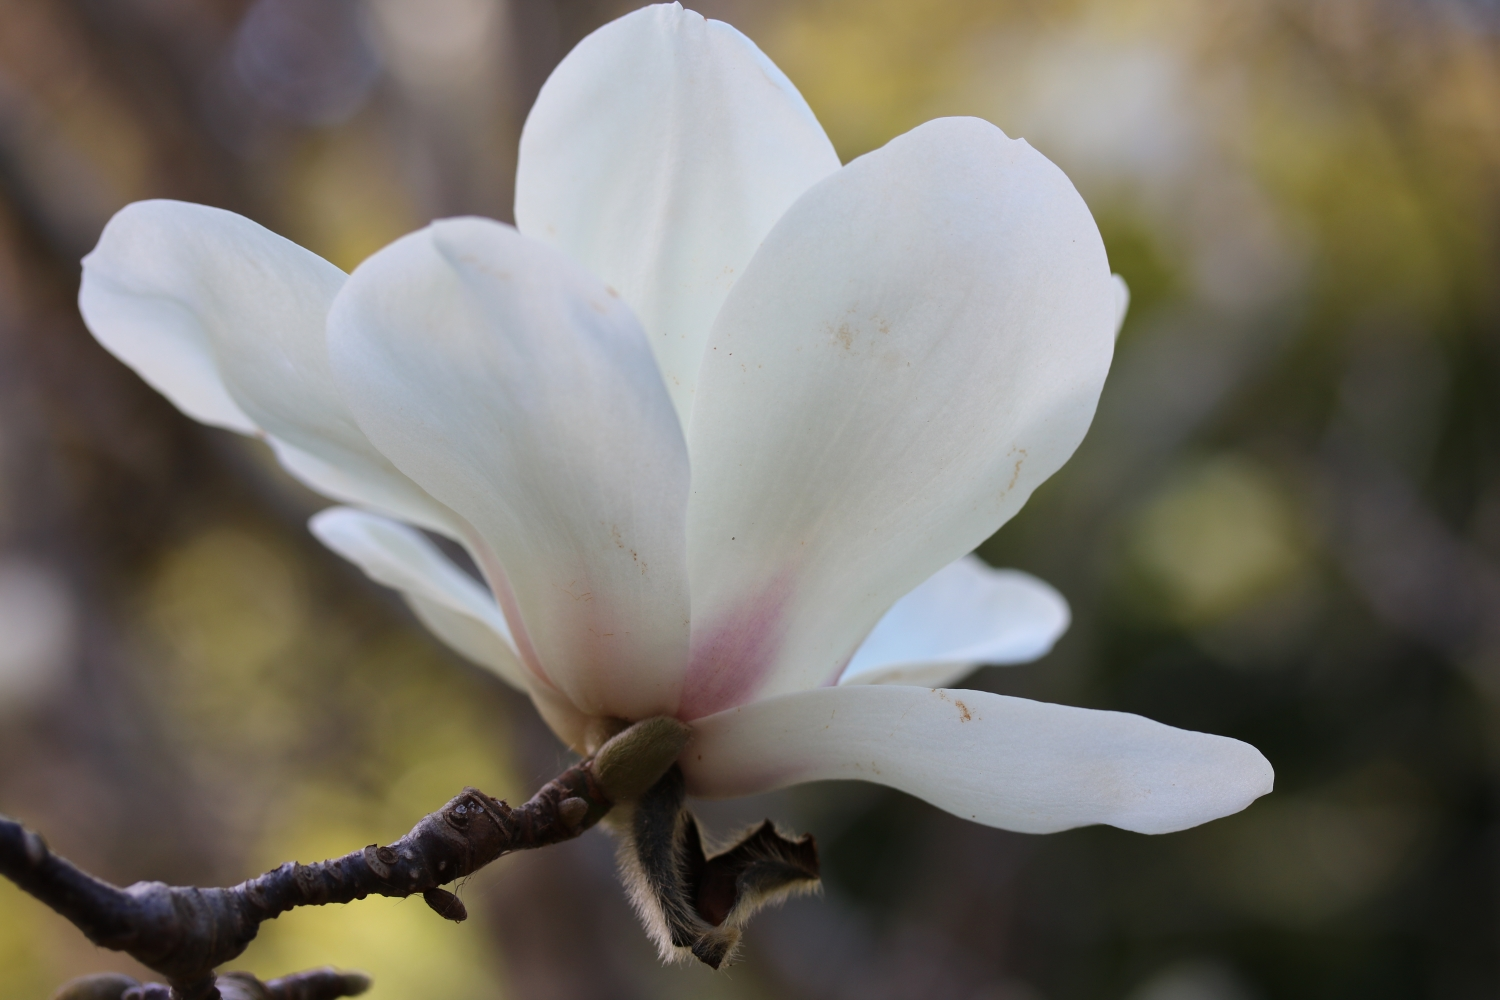 The detail and purple tinge of the Magnolia denudata bloom at Vaucluse House